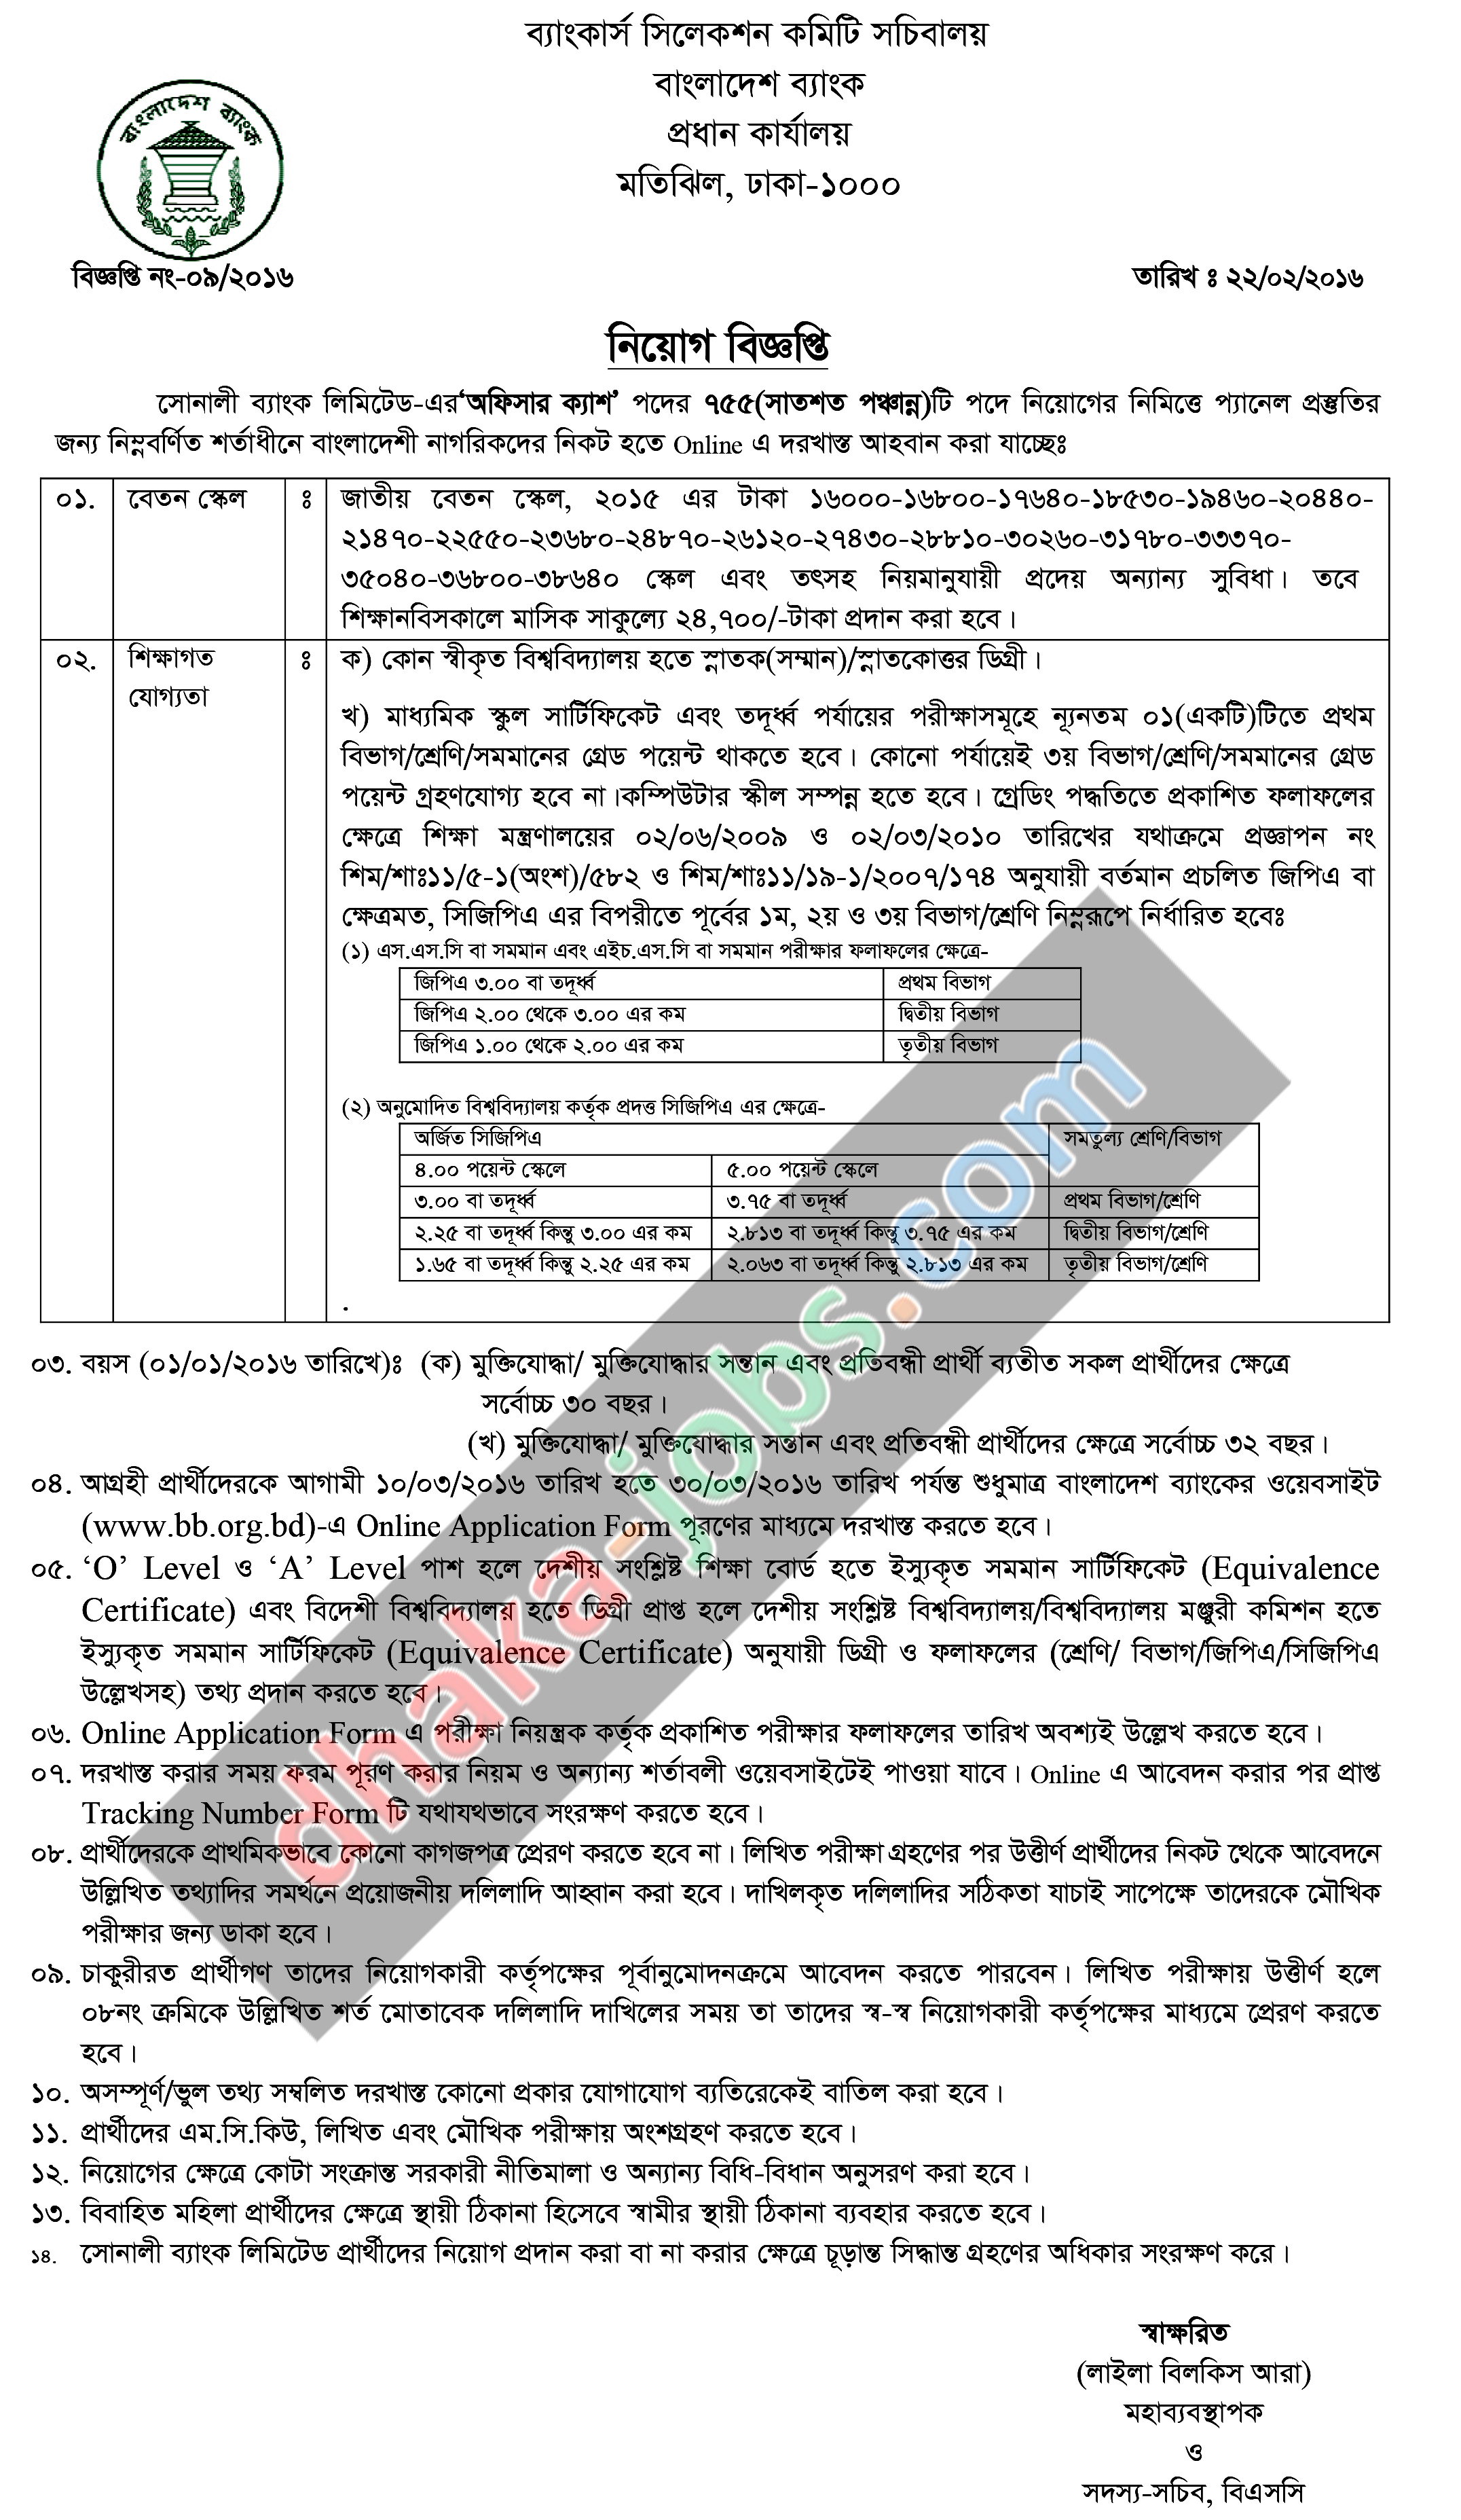 Sonali Bank Job Circular Apply Online 2016